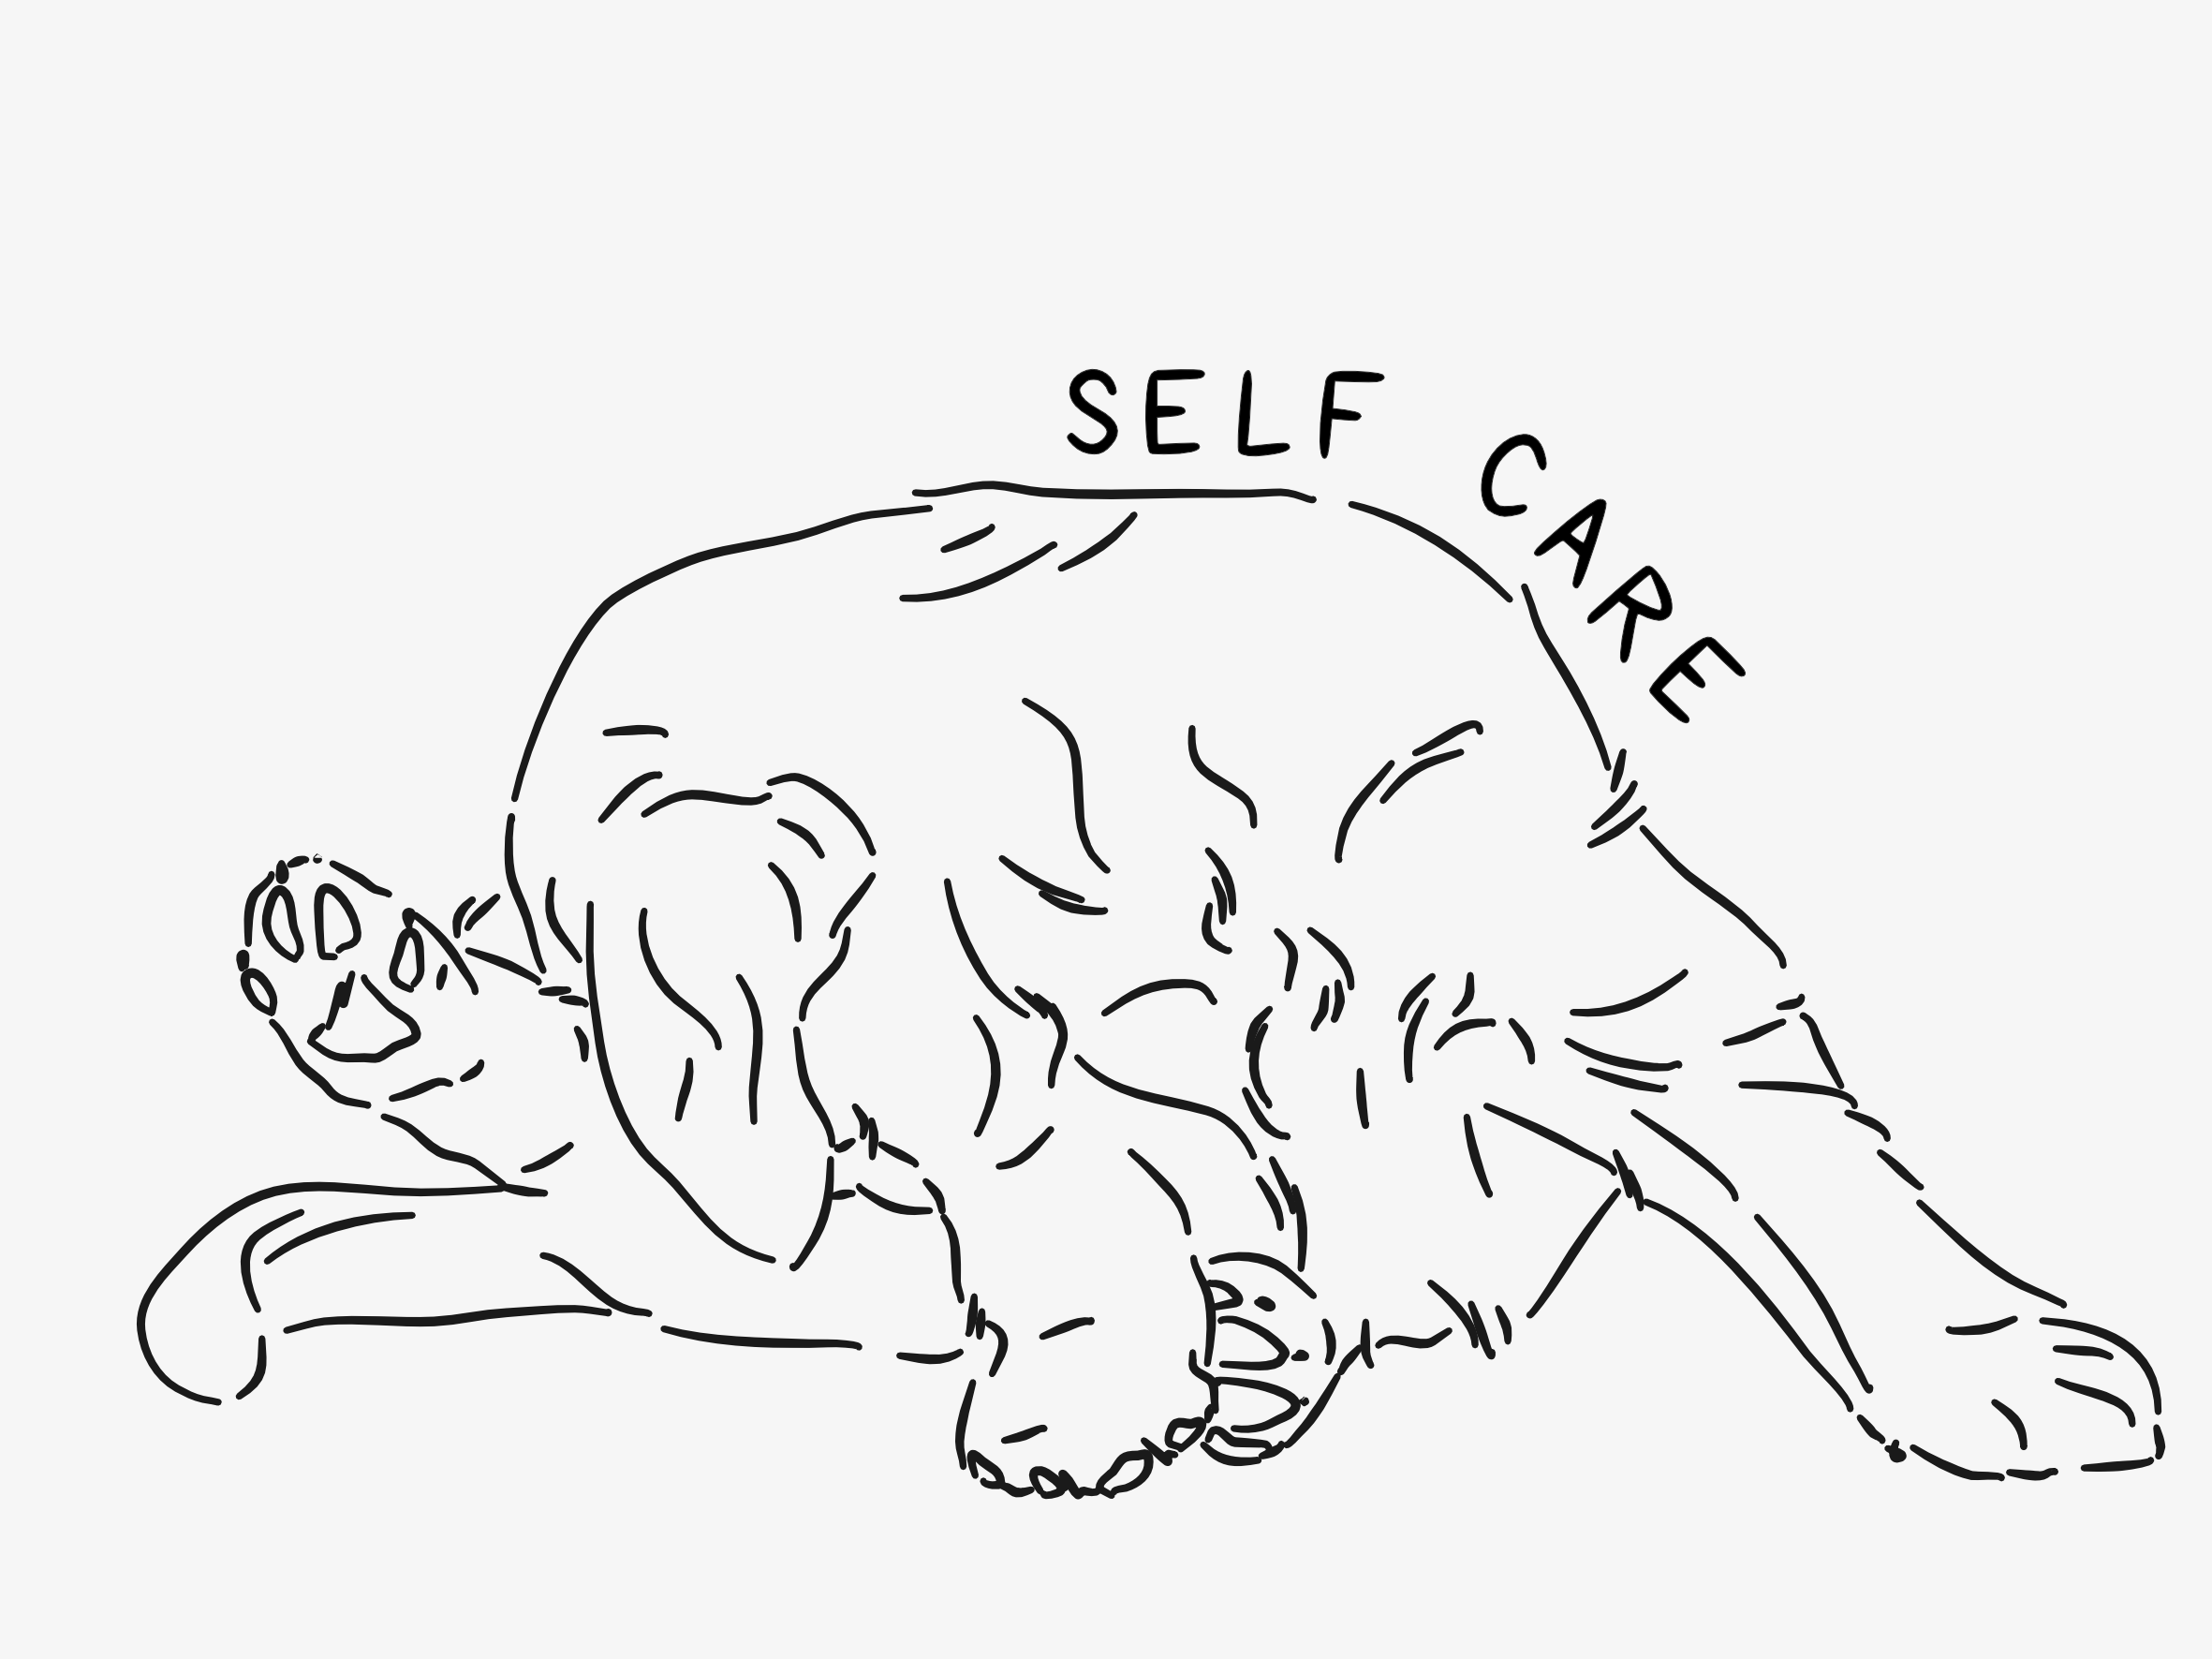 Some Updated Thoughts On Self-Care